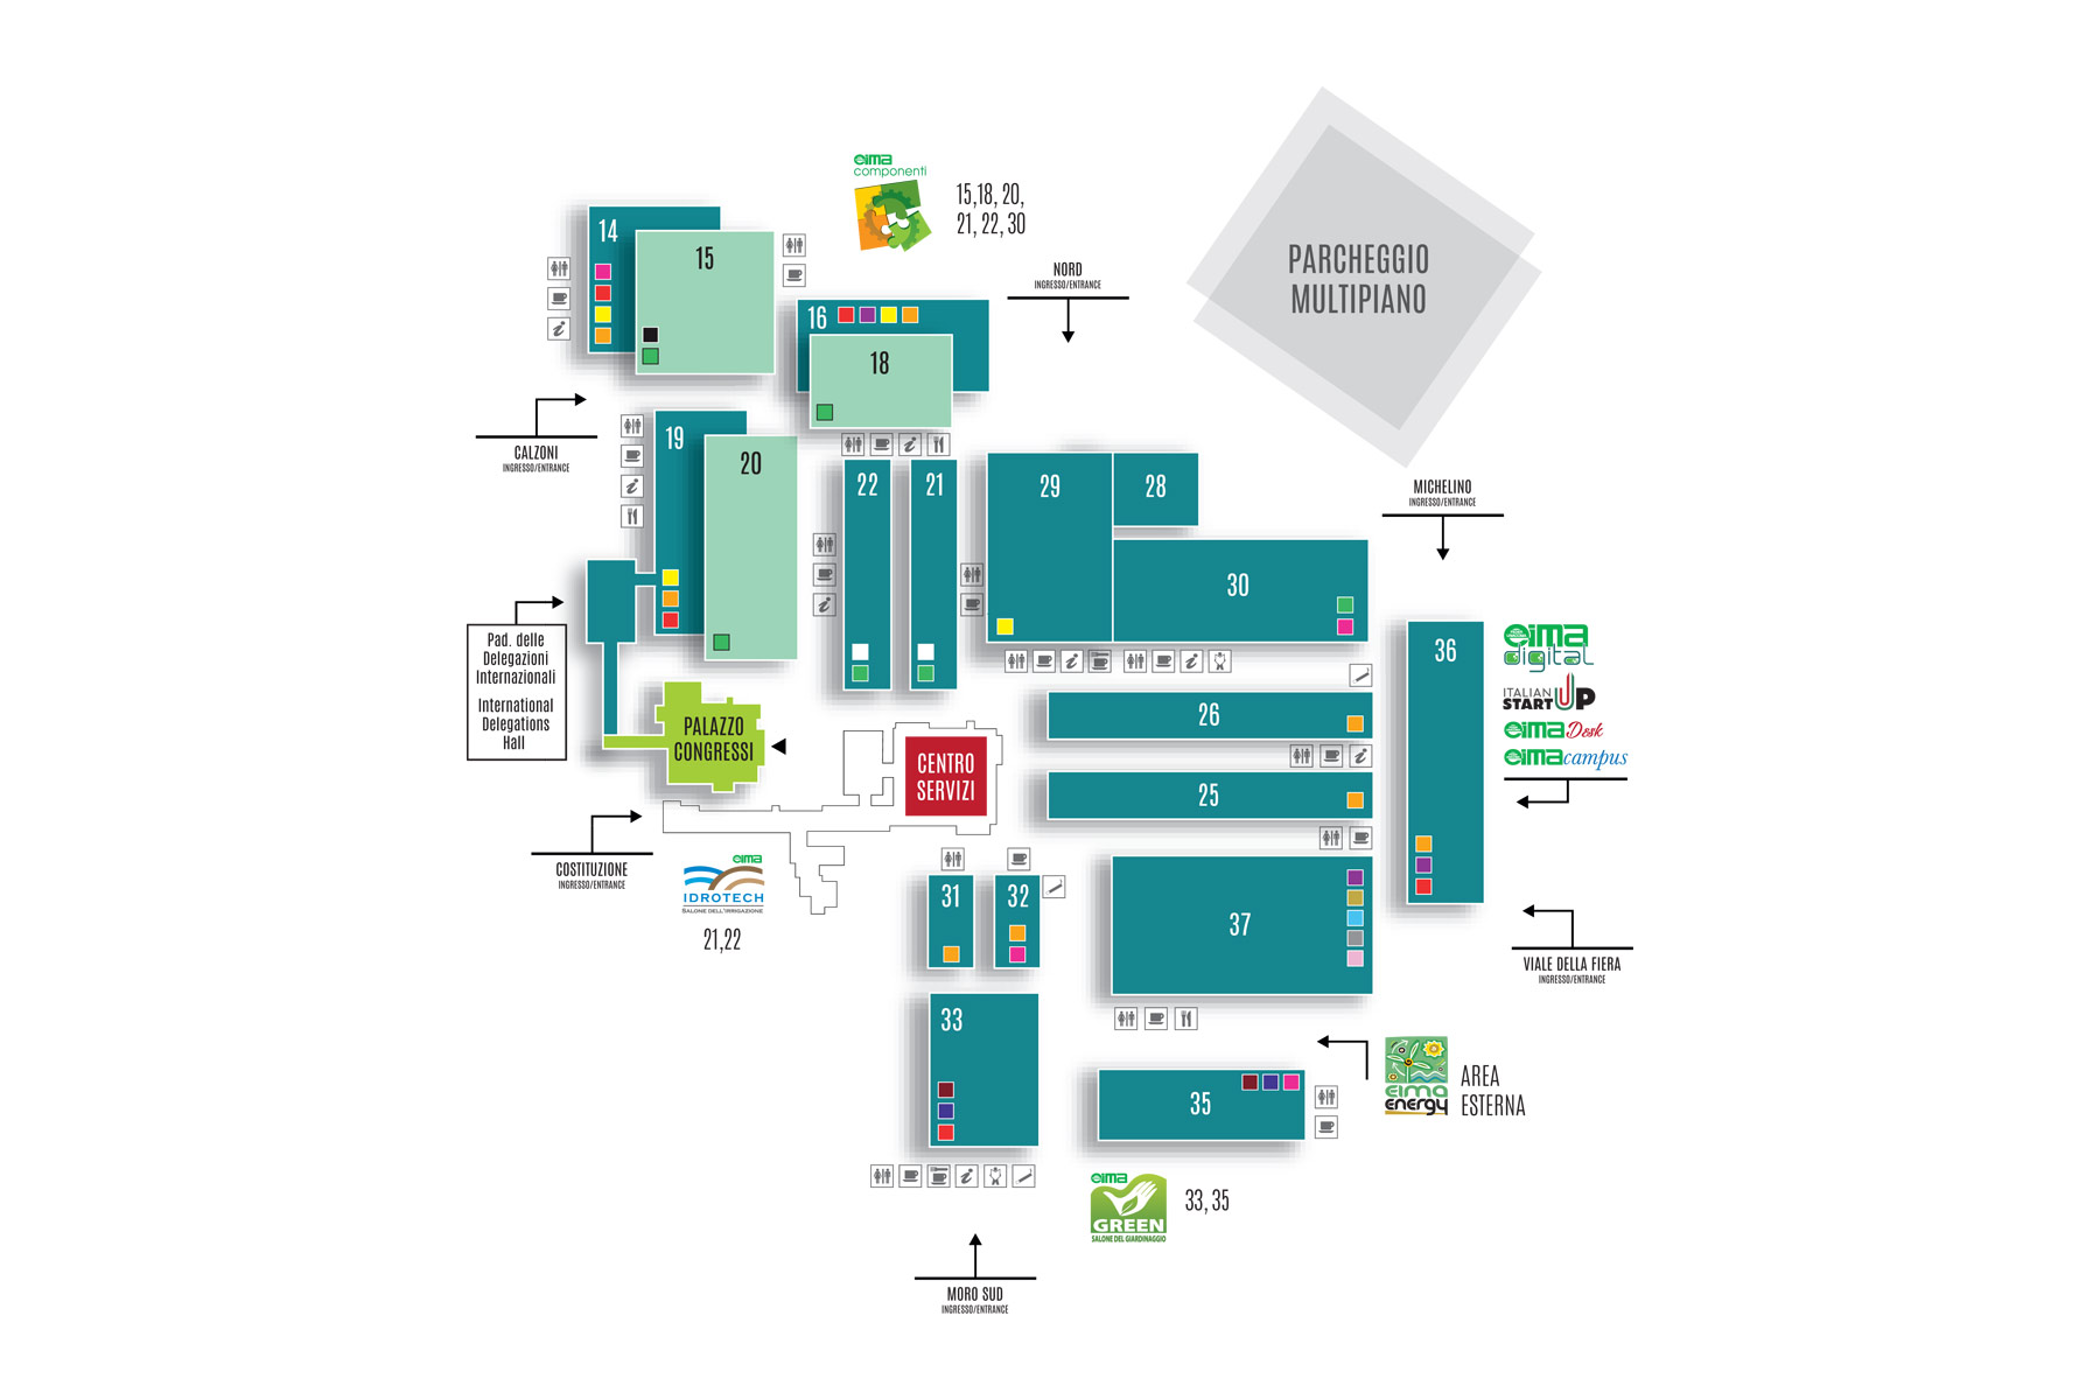 Hall Plan and Product Categories at EIMA